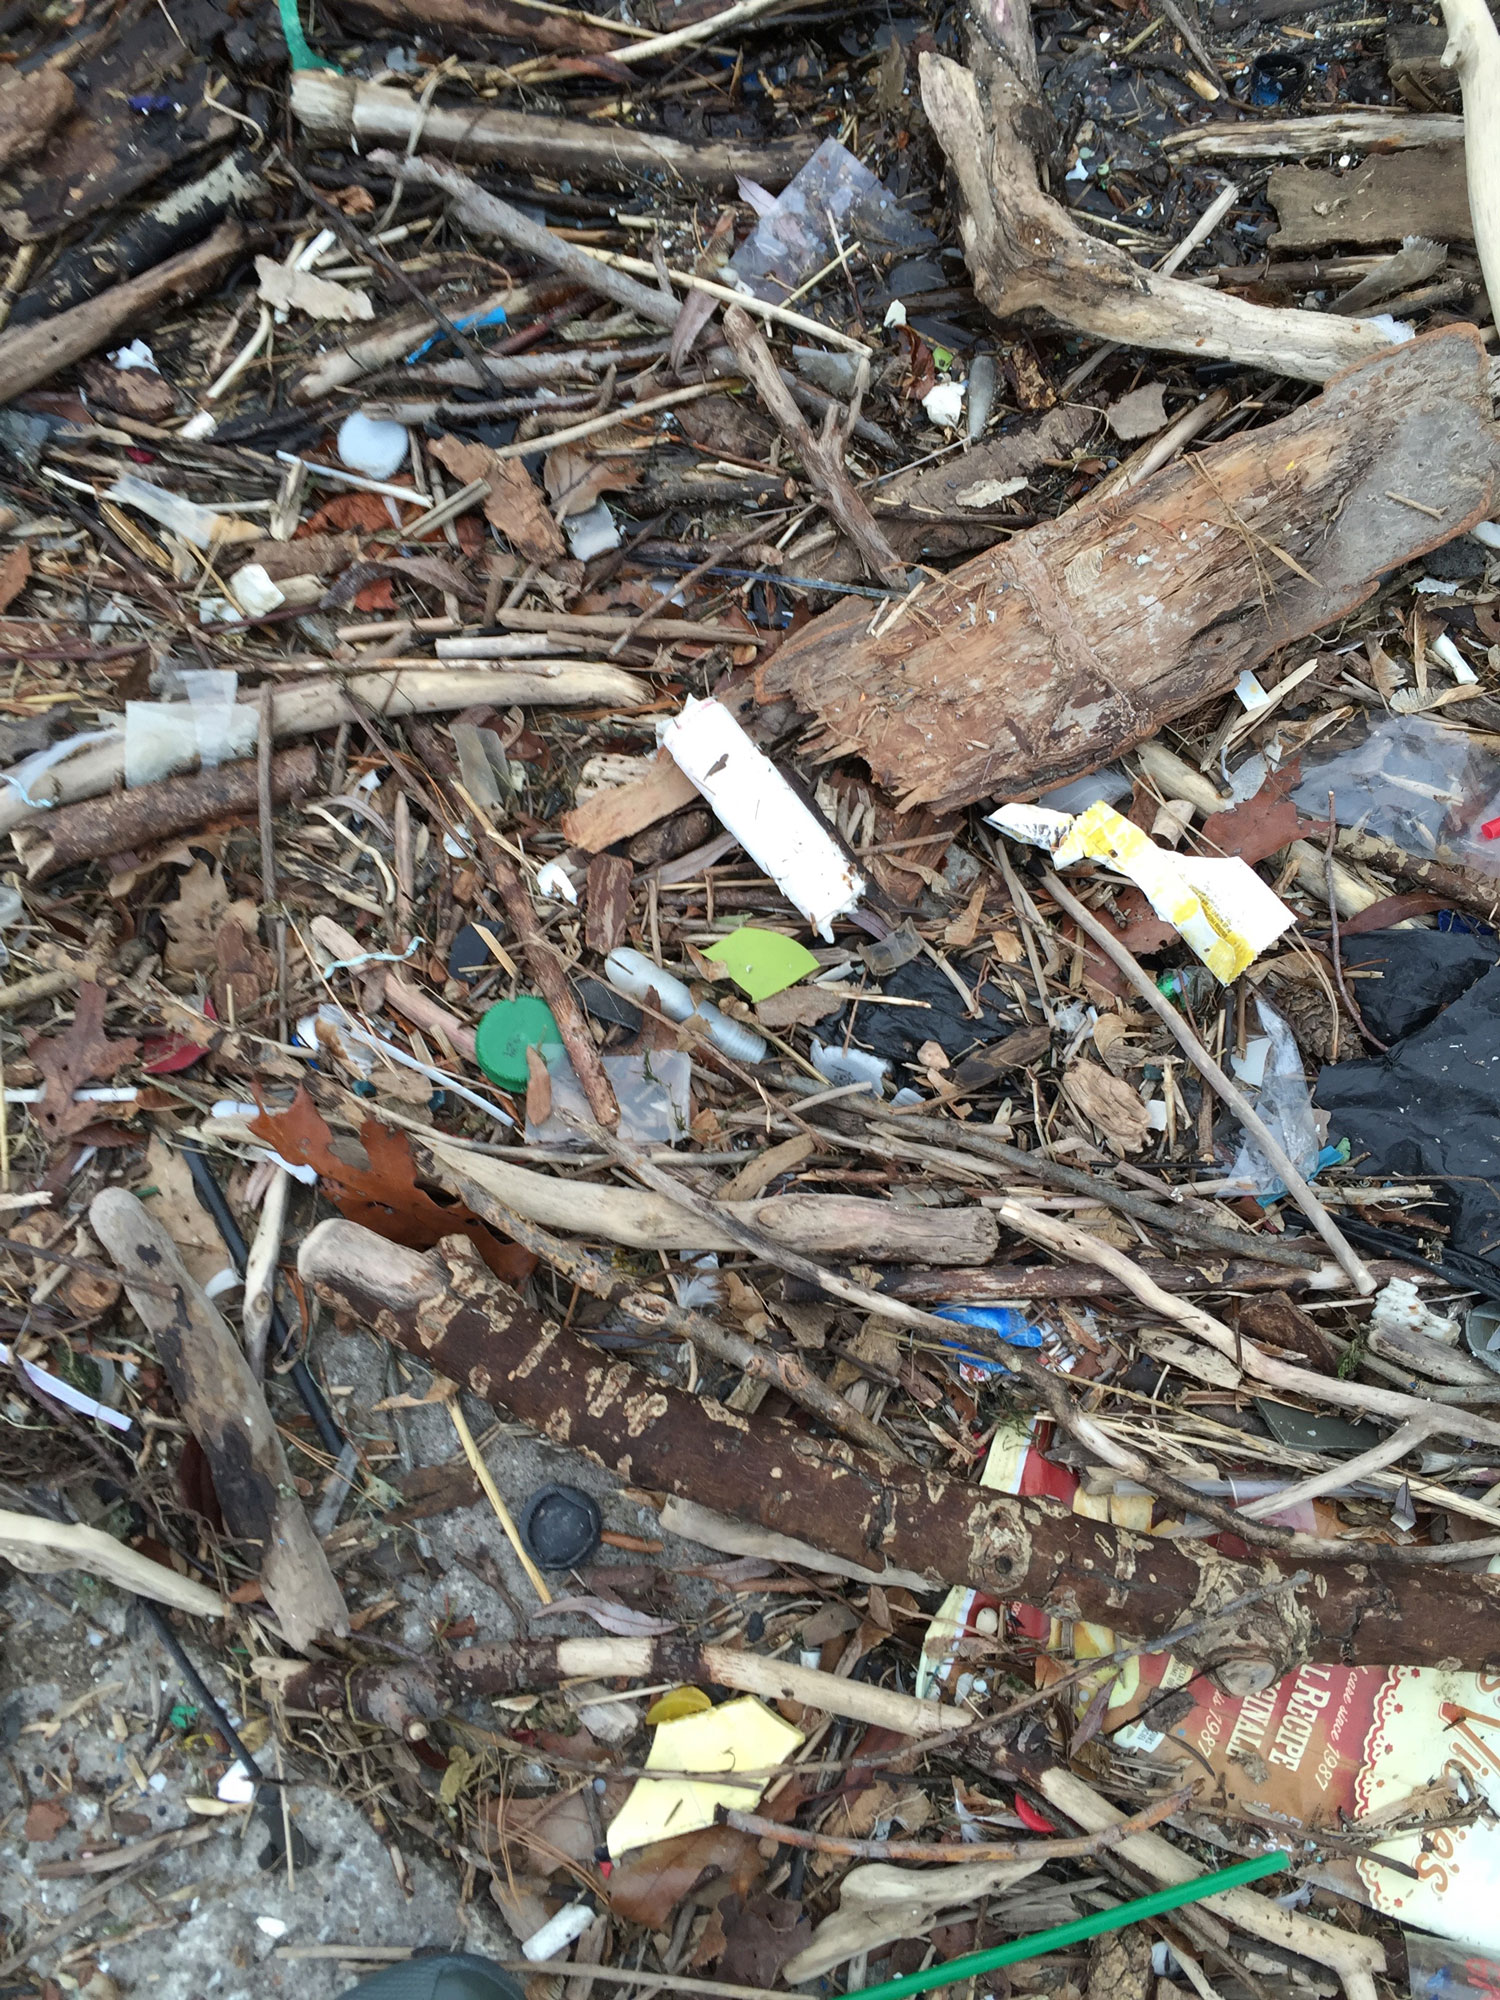 A tampon applicator buried in a mess found at Humber Bay Shores Park West,Boat Launch Area. (Photo by Michael Austin)